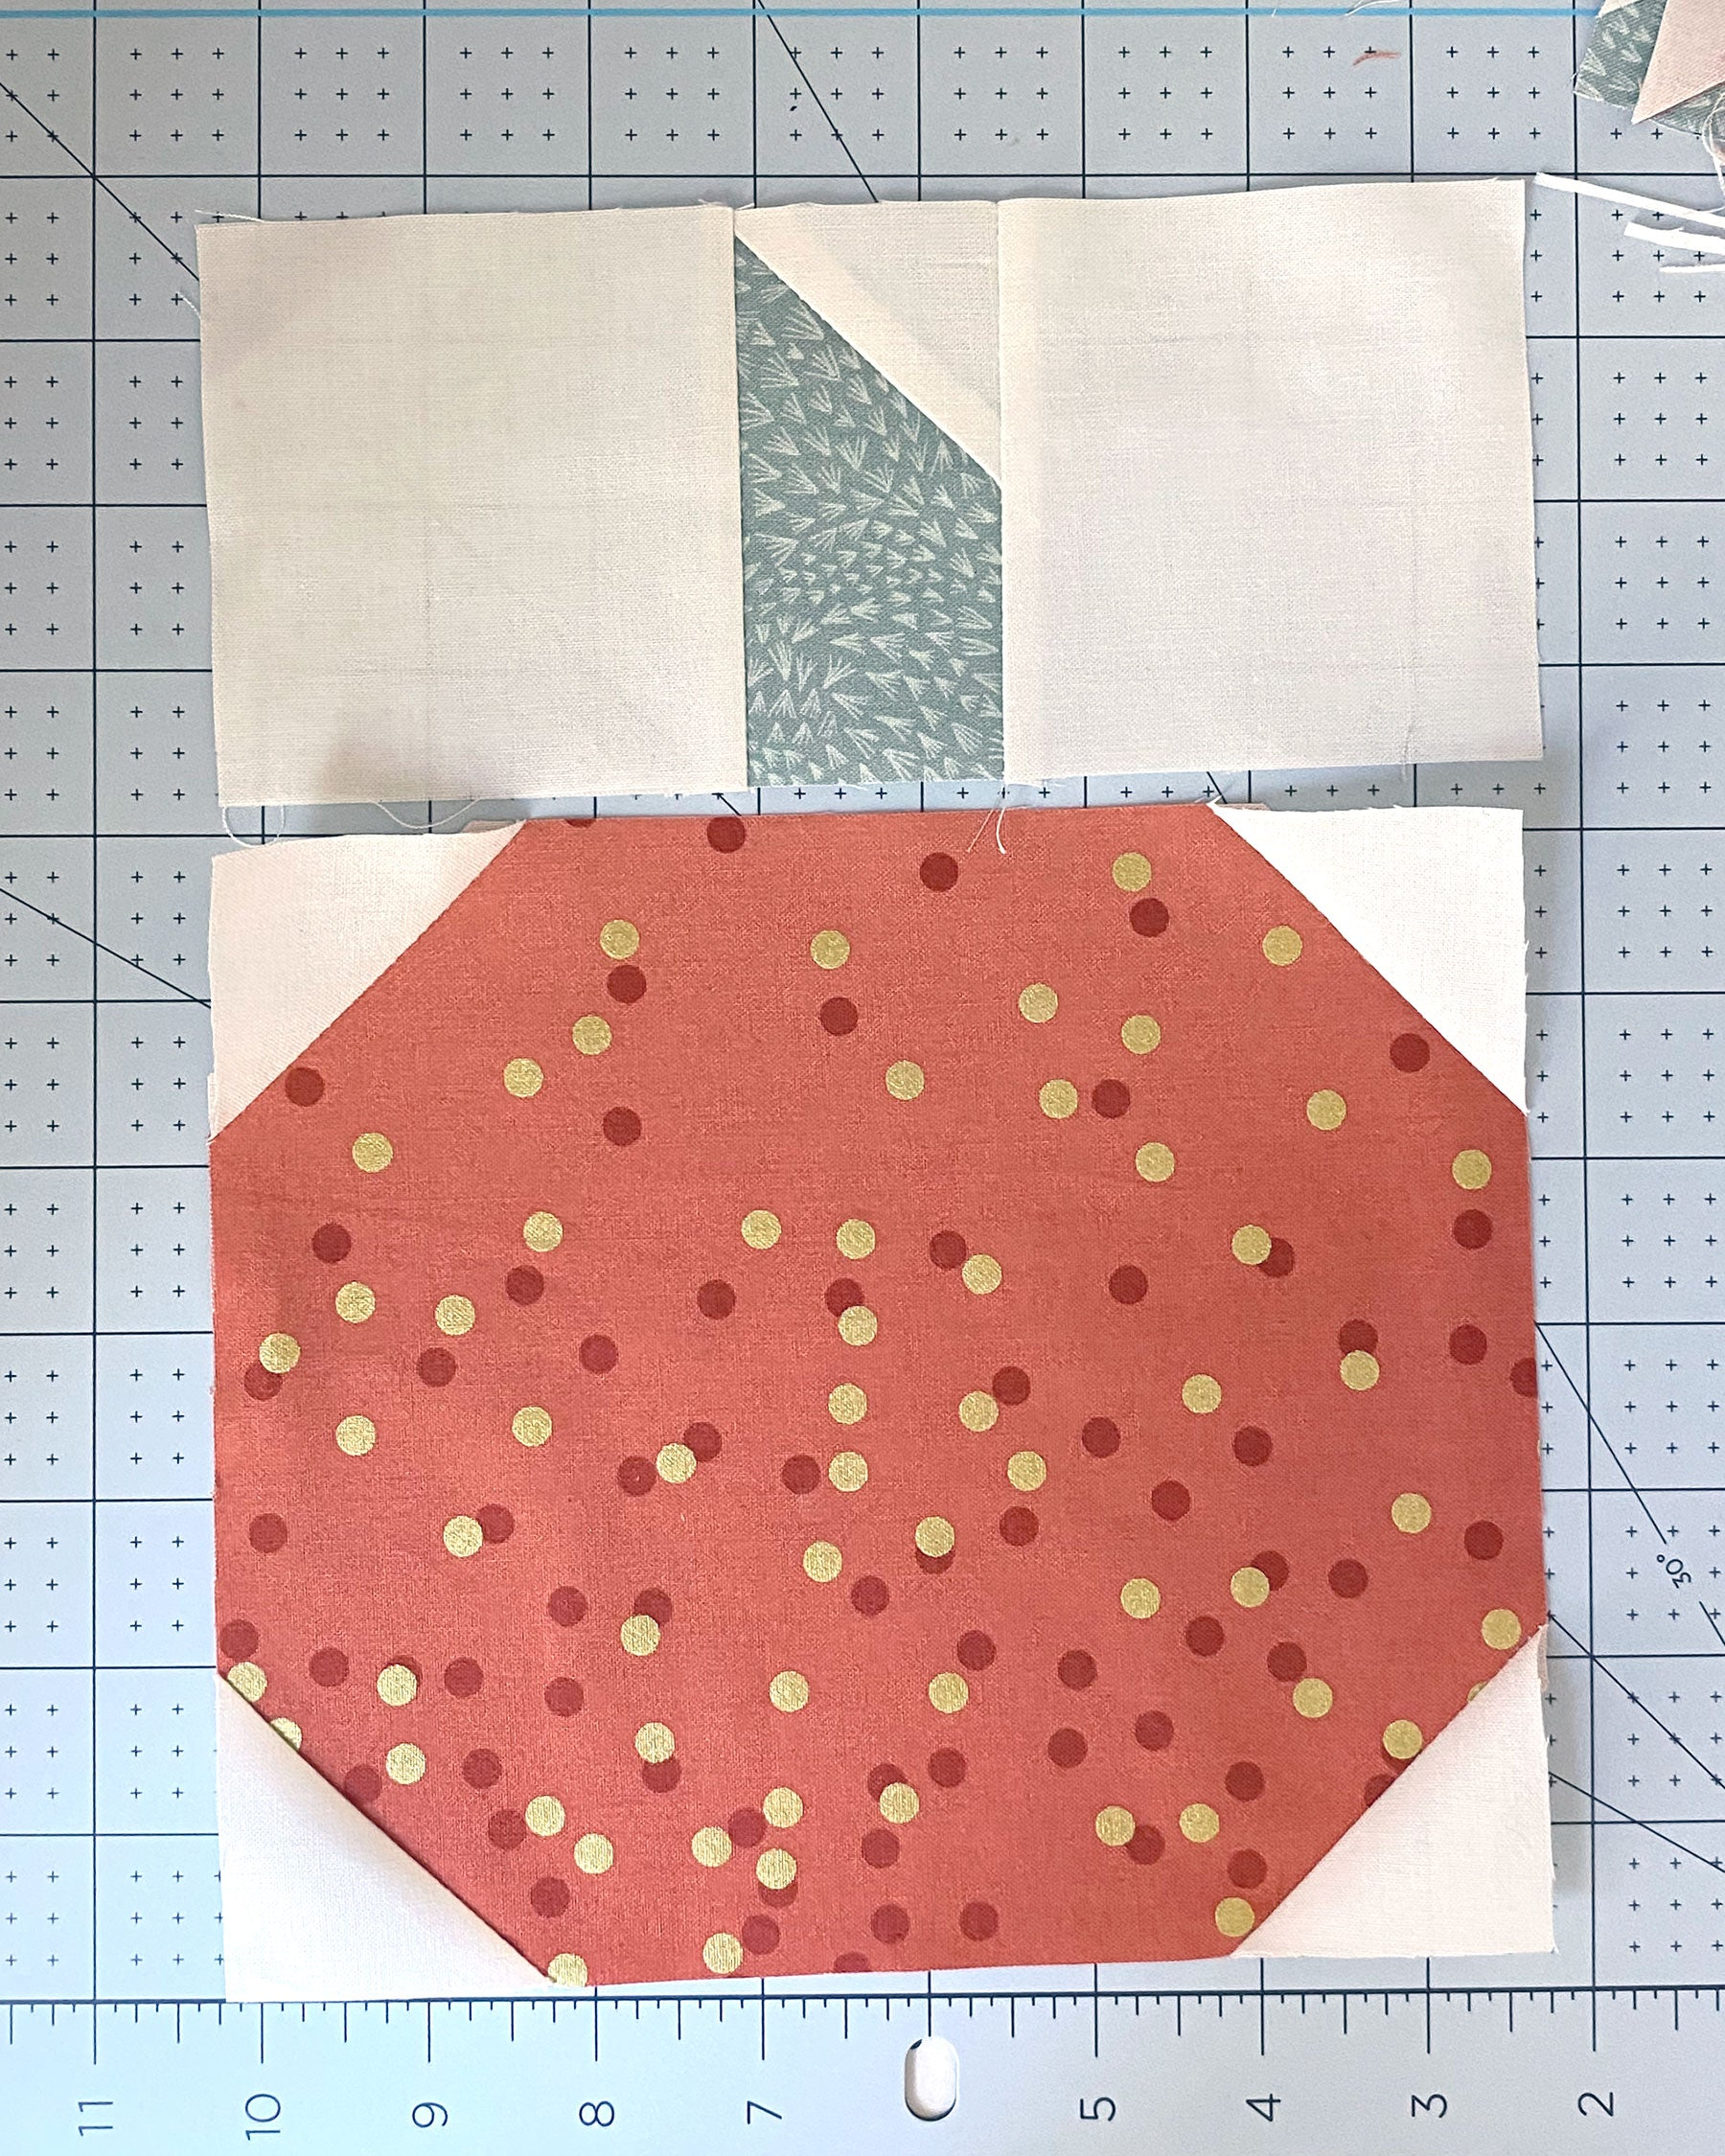 Pumpkin Quilt Block tutorial - sew top and bottom pieces together